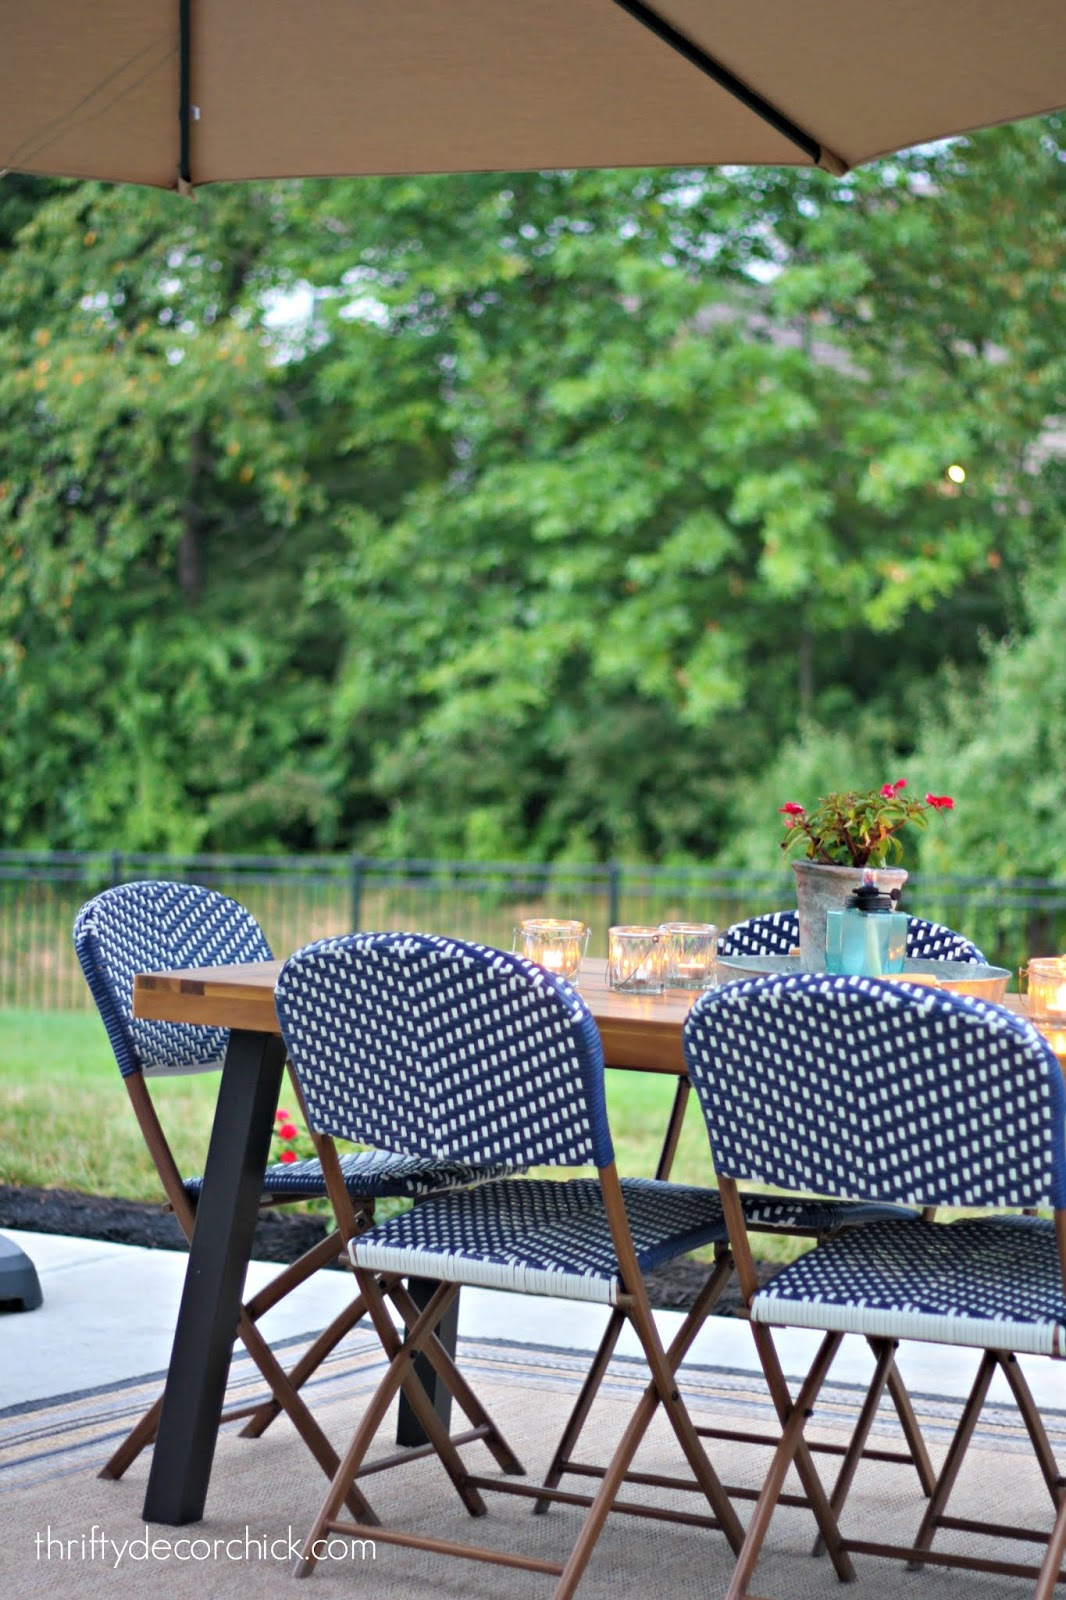 Plastic wicker patio chairs in blue and white